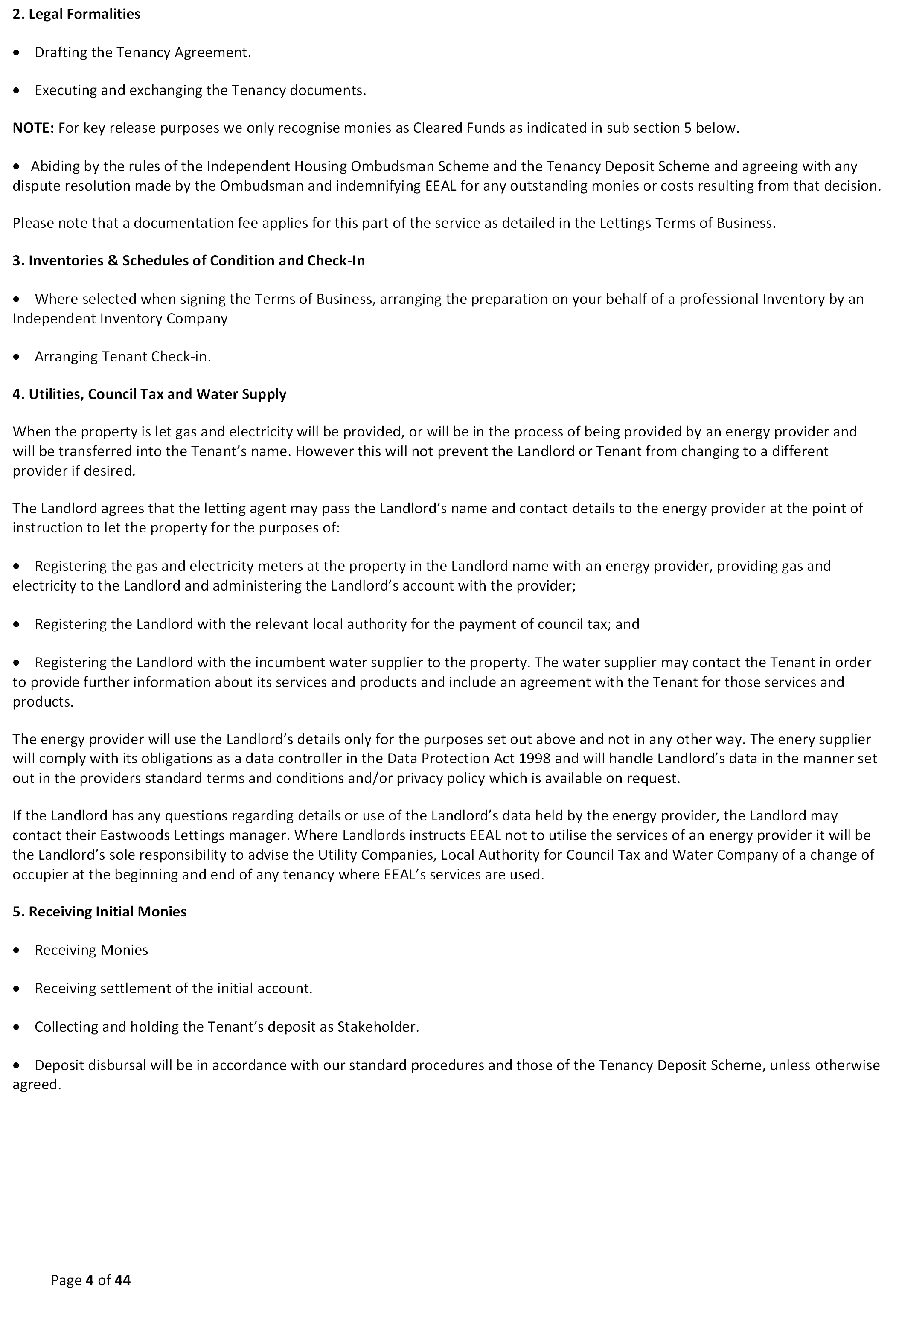 GUIDE TO LANDLORDS-4